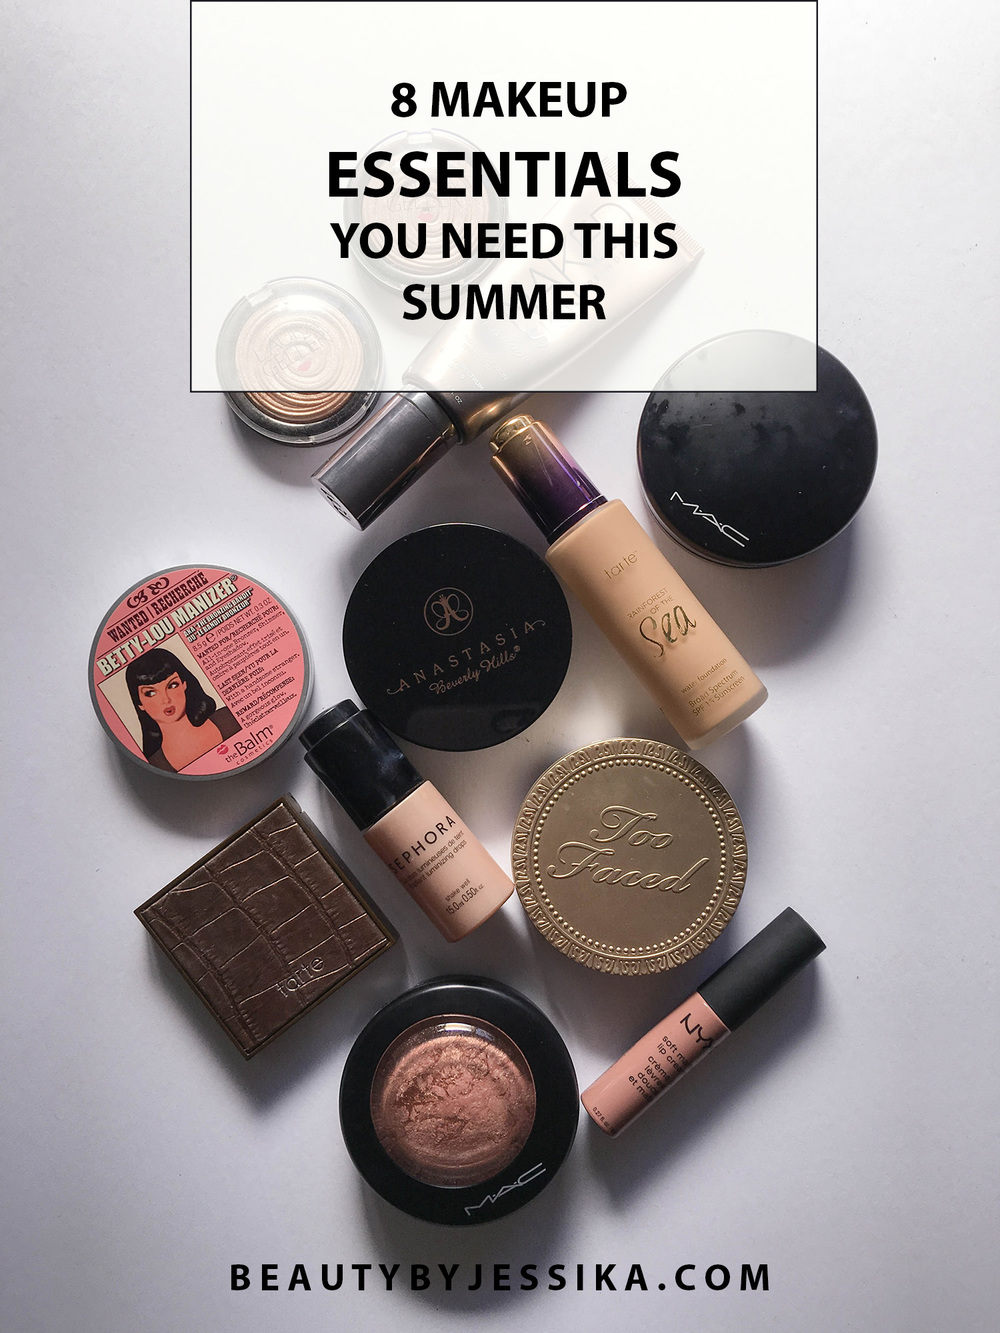 Don't let the summer heat keep you from slaying your makeup! Here are my 8 makeup essentials you need this summer. Read the full post at beautybyjessika.com.